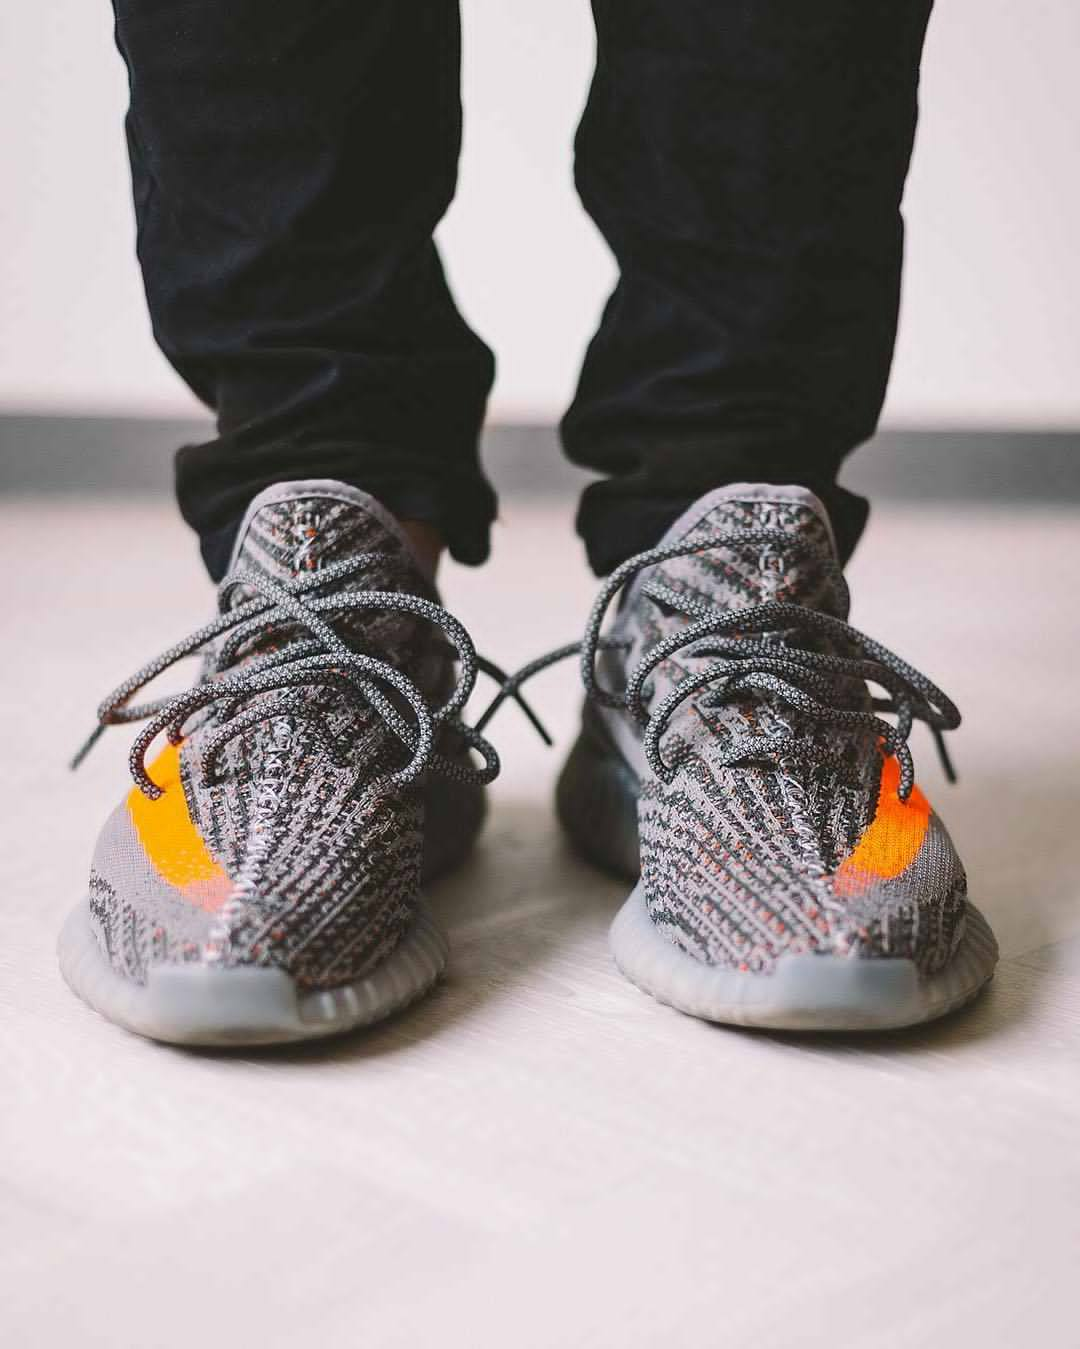 e6afbf638c7 Kanye and adidas have changed things up with their upcoming adidas Yeezy  350 Boost